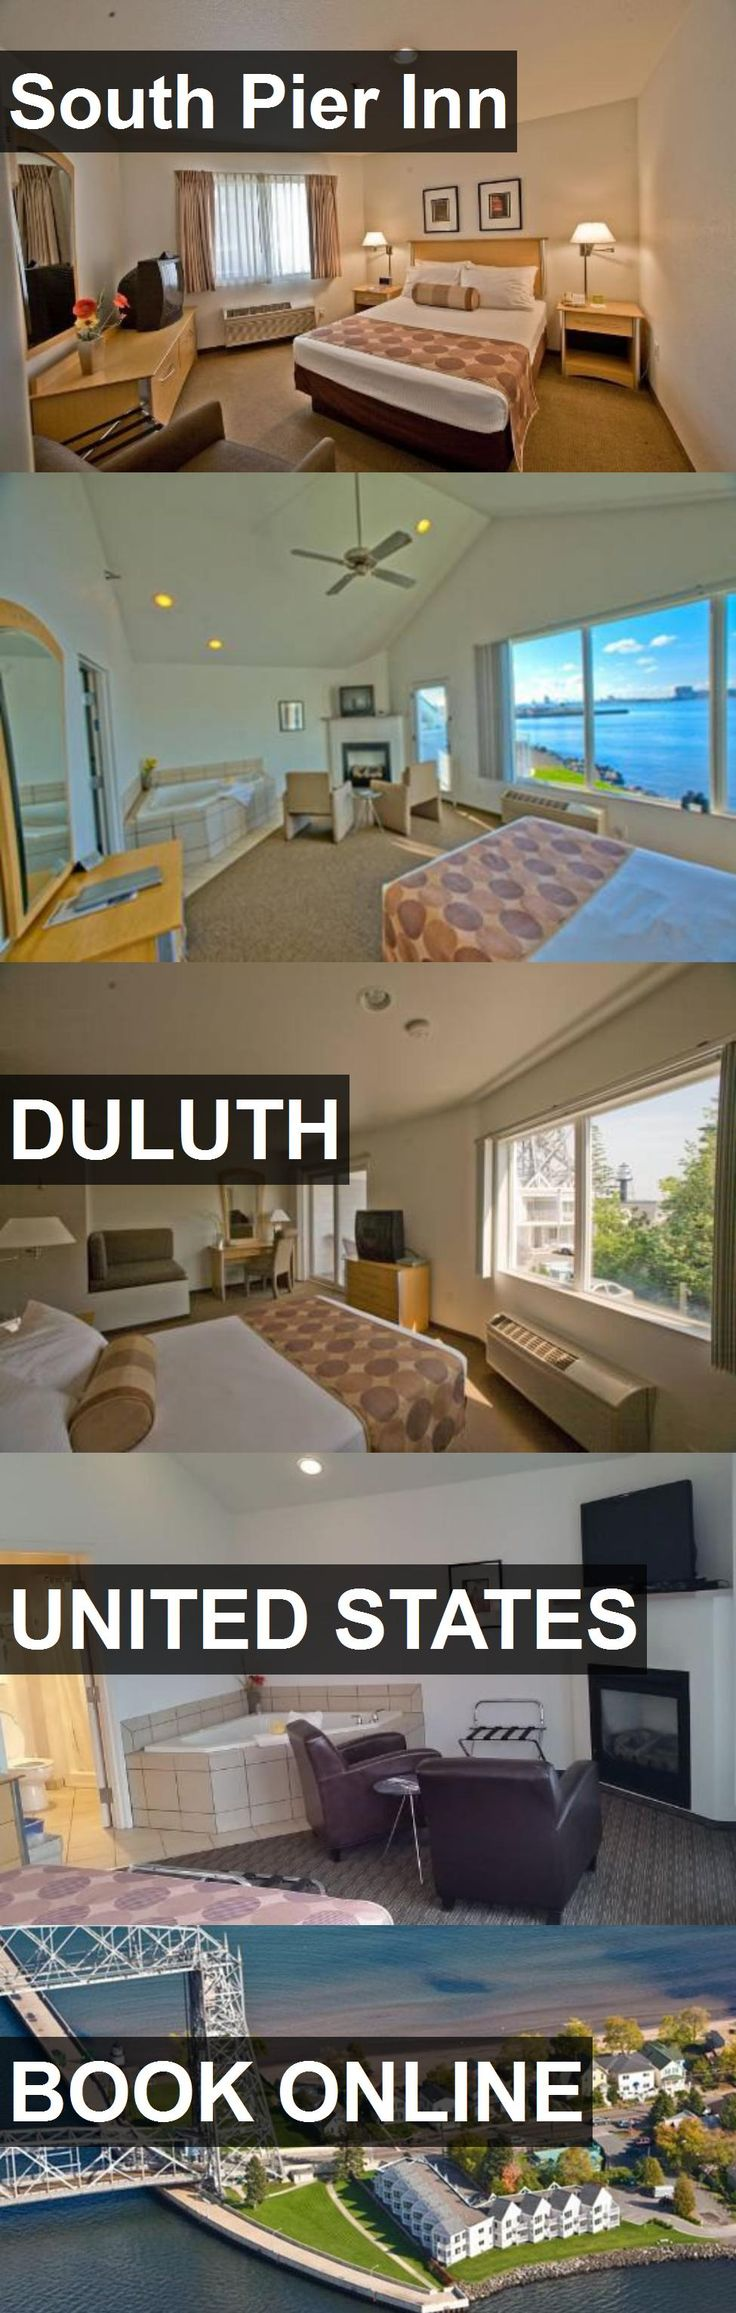 Hotel South Pier Inn in Duluth, United States. For more information, photos, reviews and best prices please follow the link. #UnitedStates #Duluth #travel #vacation #hotel